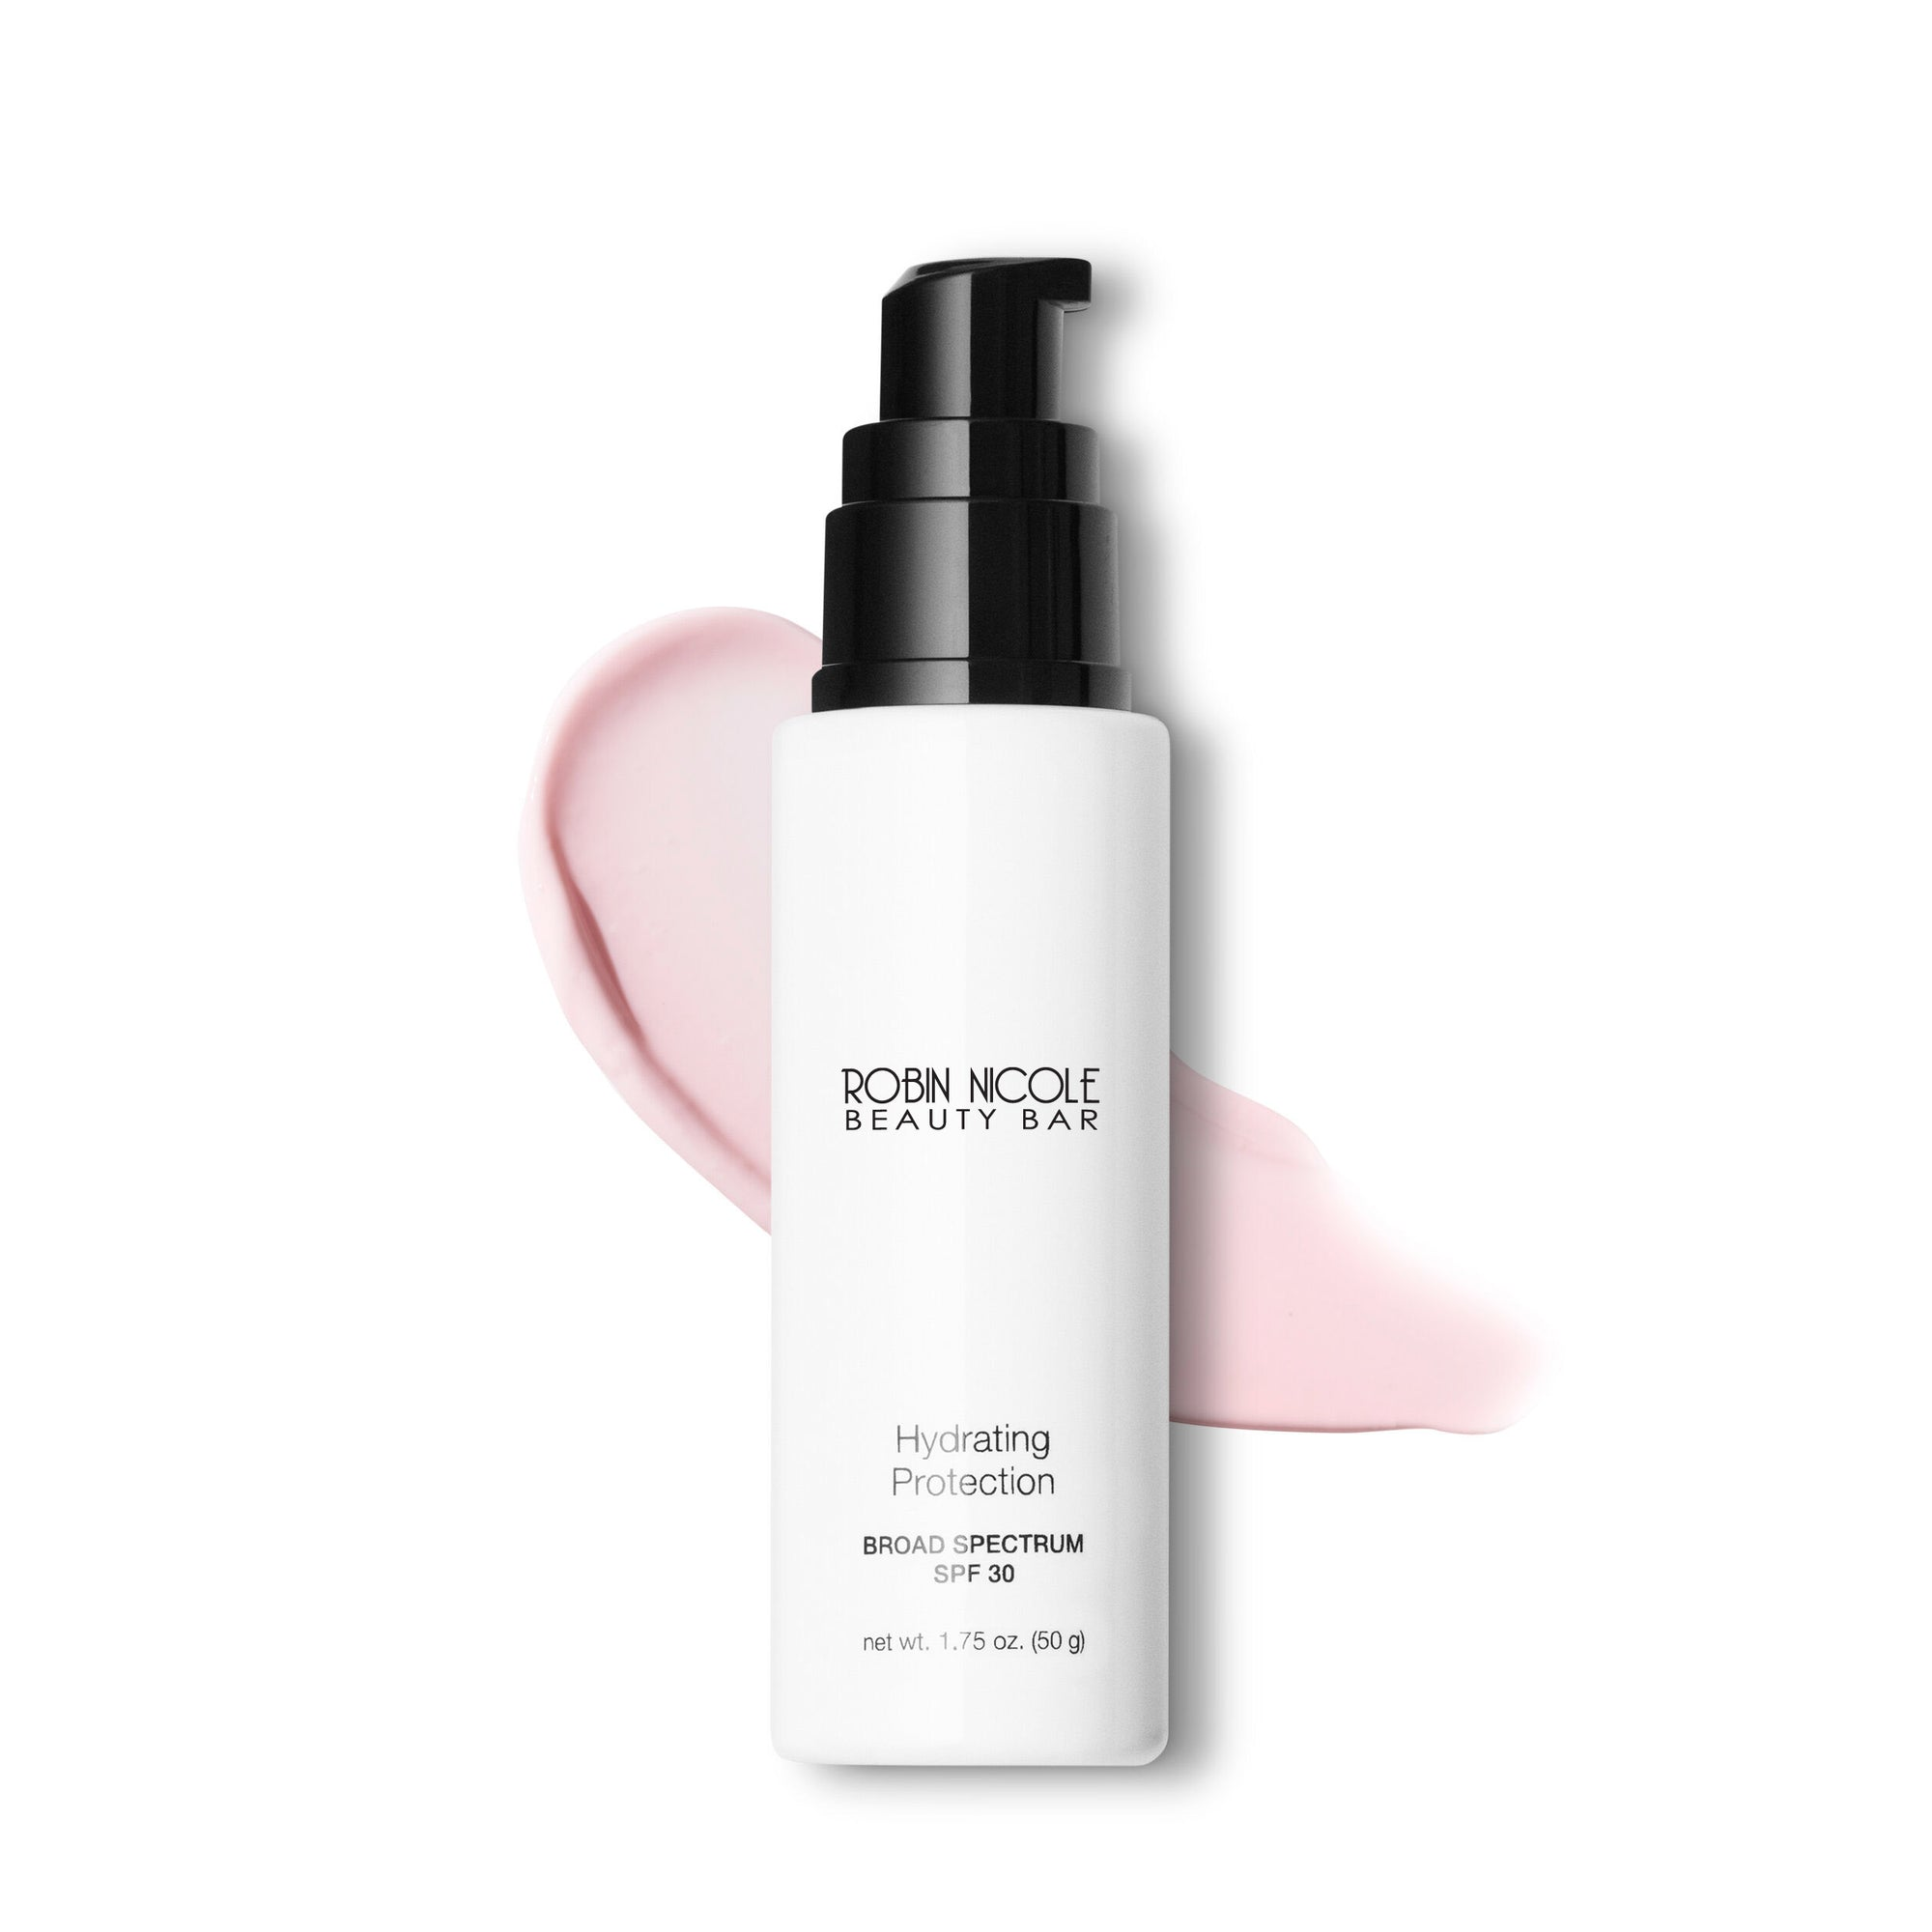 Hydrating Protection SPF 30